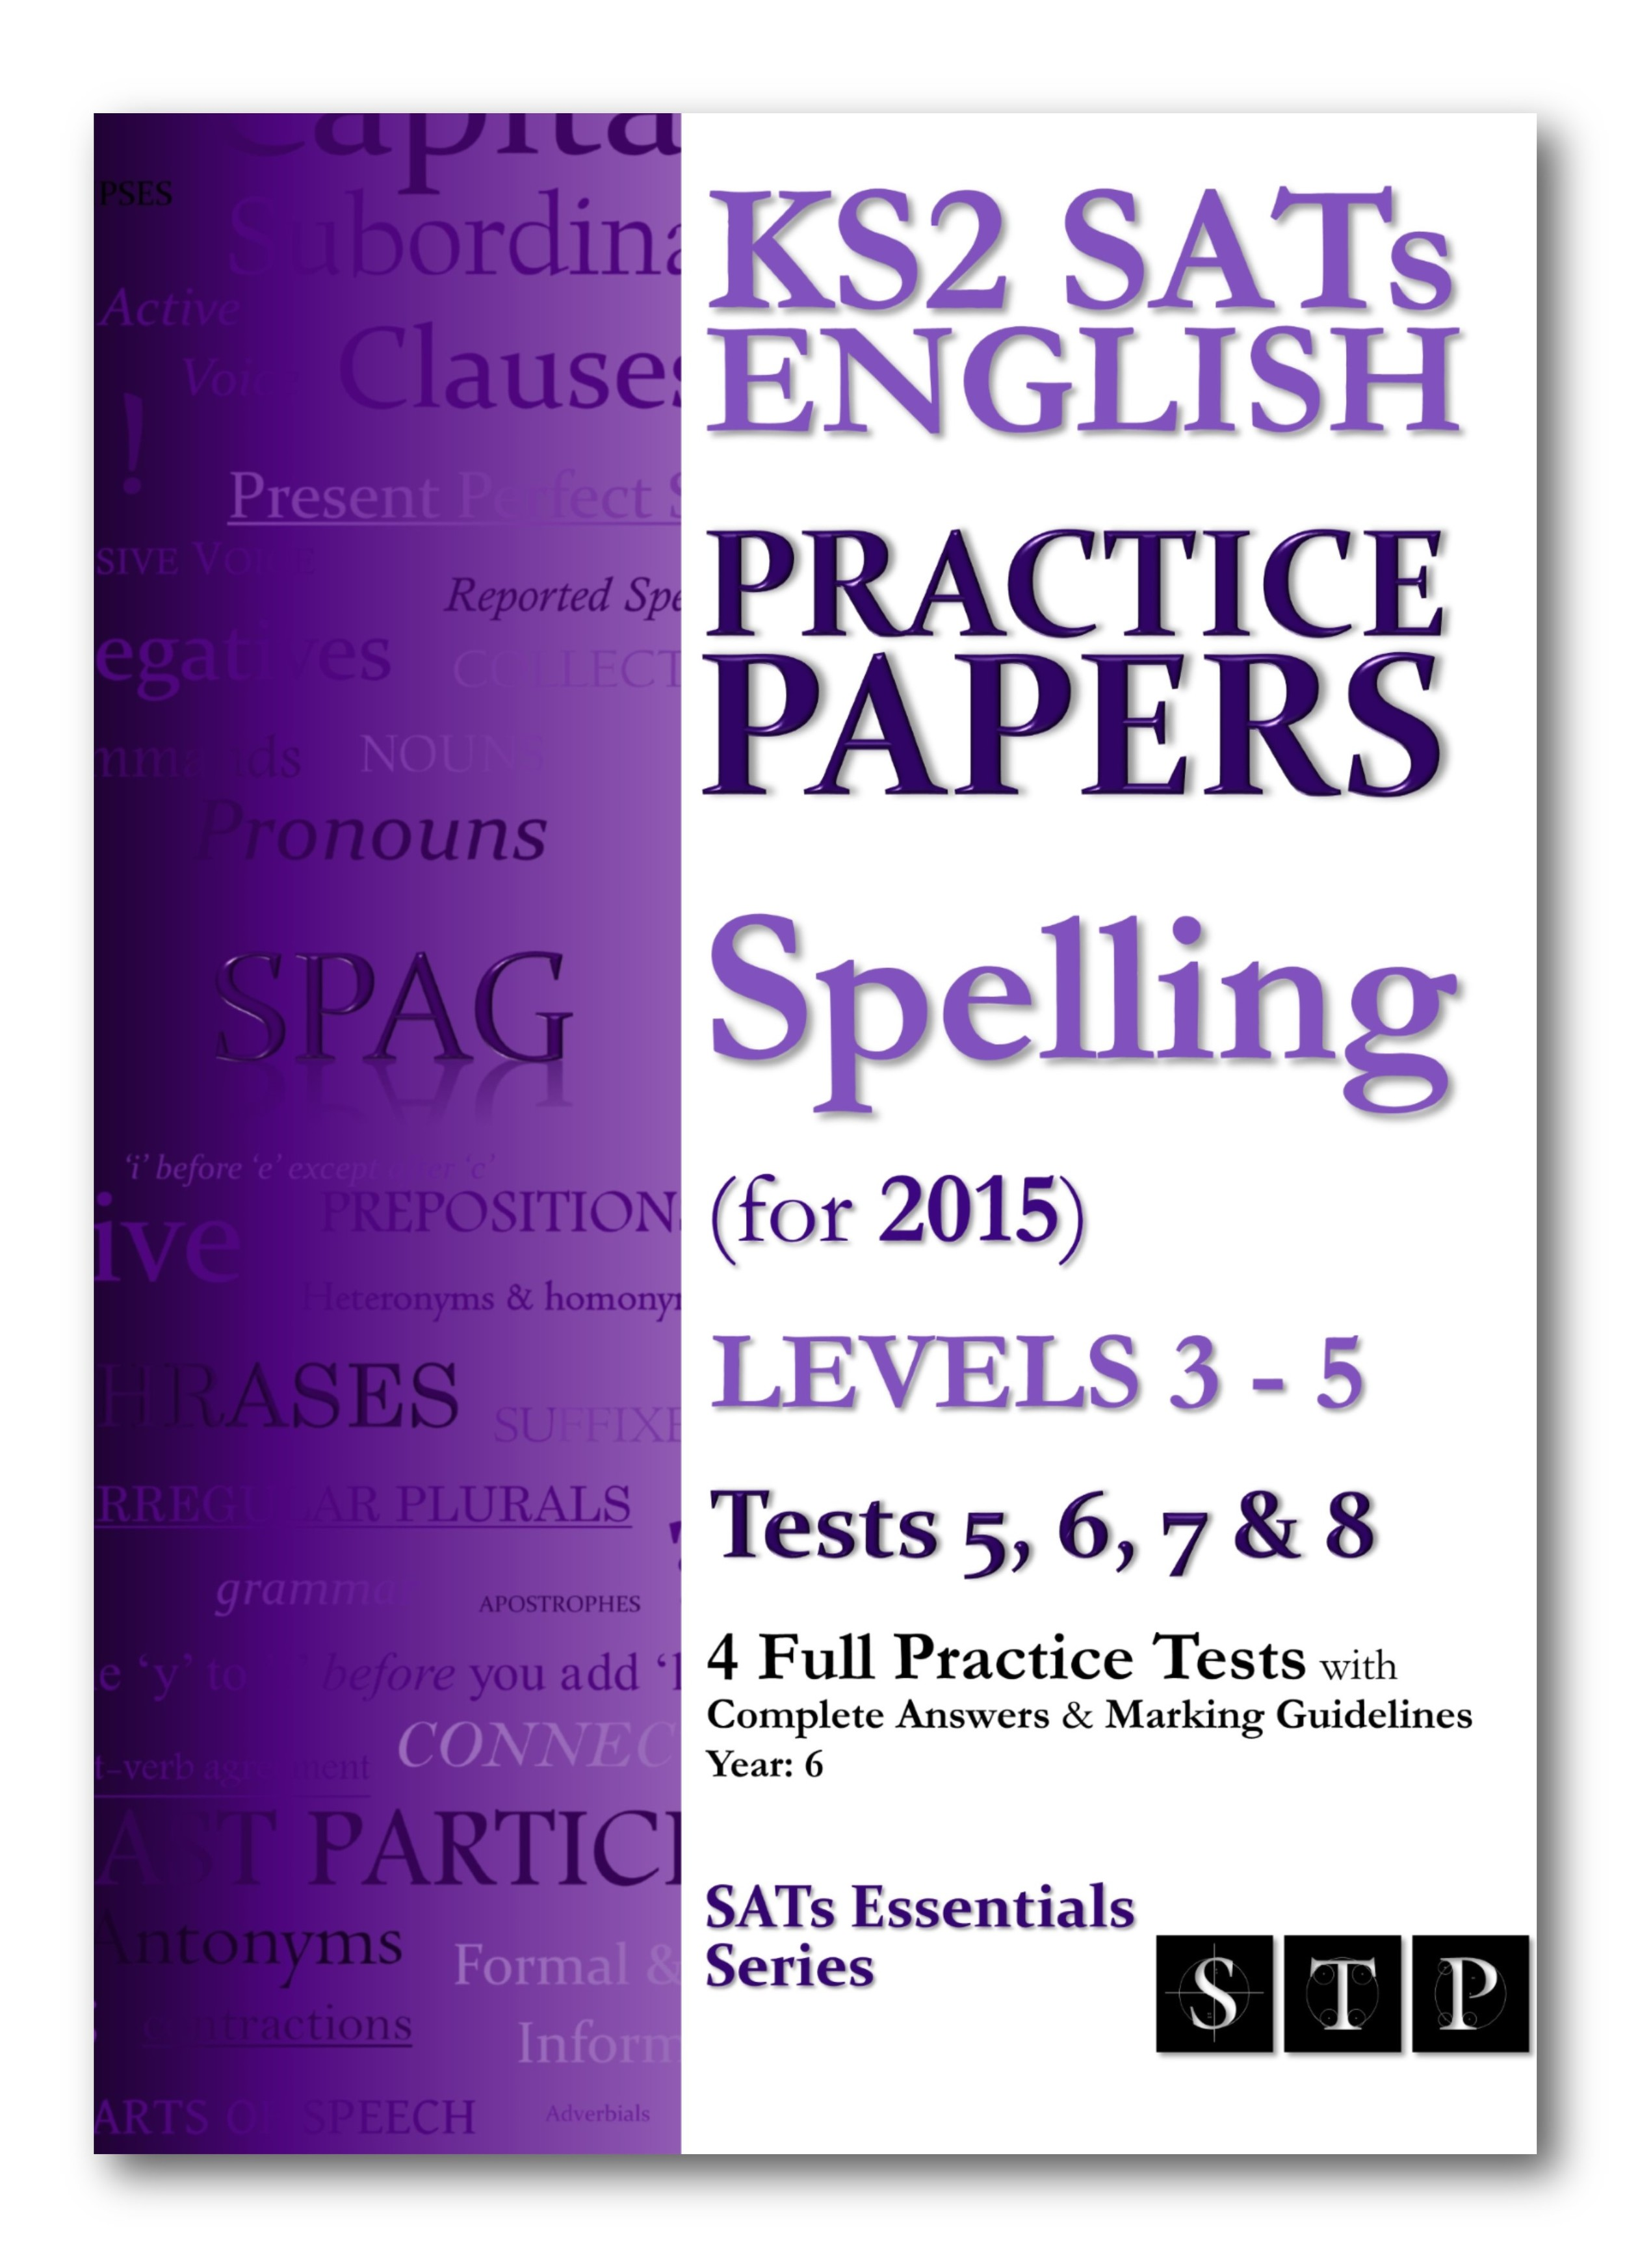 KS2 SATS Spelling Practice Papers Levels 3-5 Tests 5, 6, 7 & 8